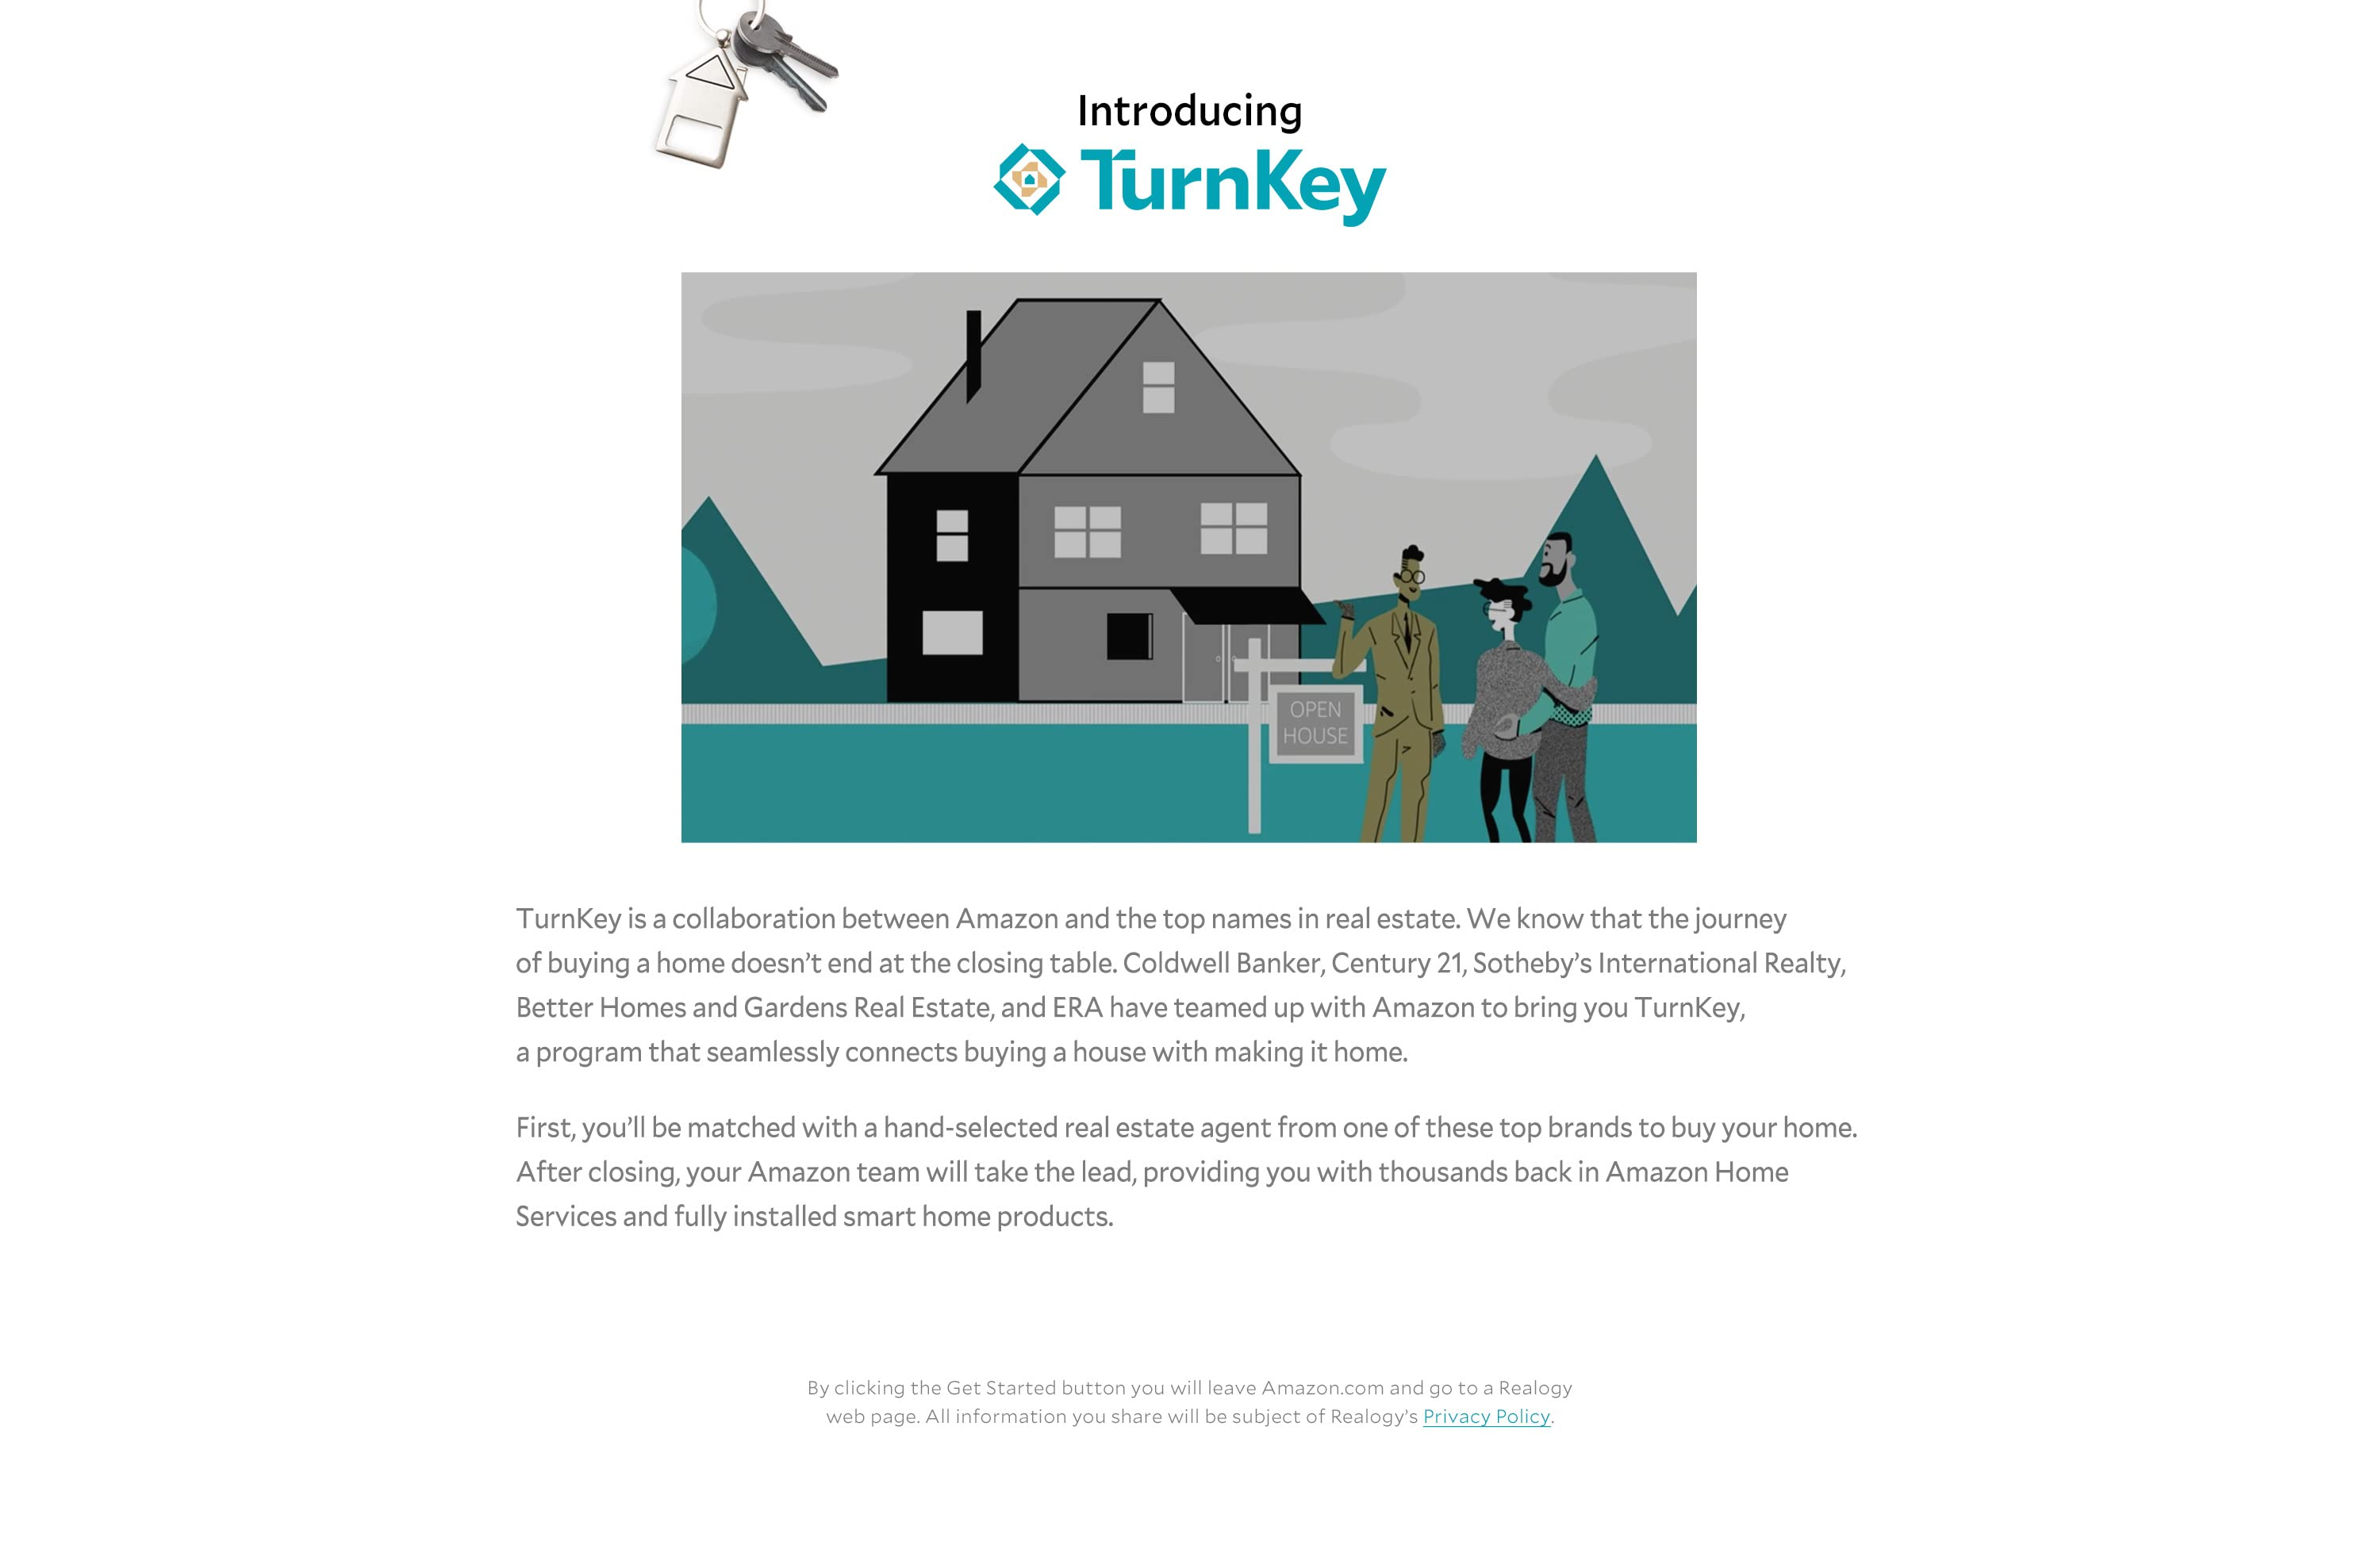 Introducing TurnKey. TurnKey is a collaboration between Amazon and the top names in real estate.